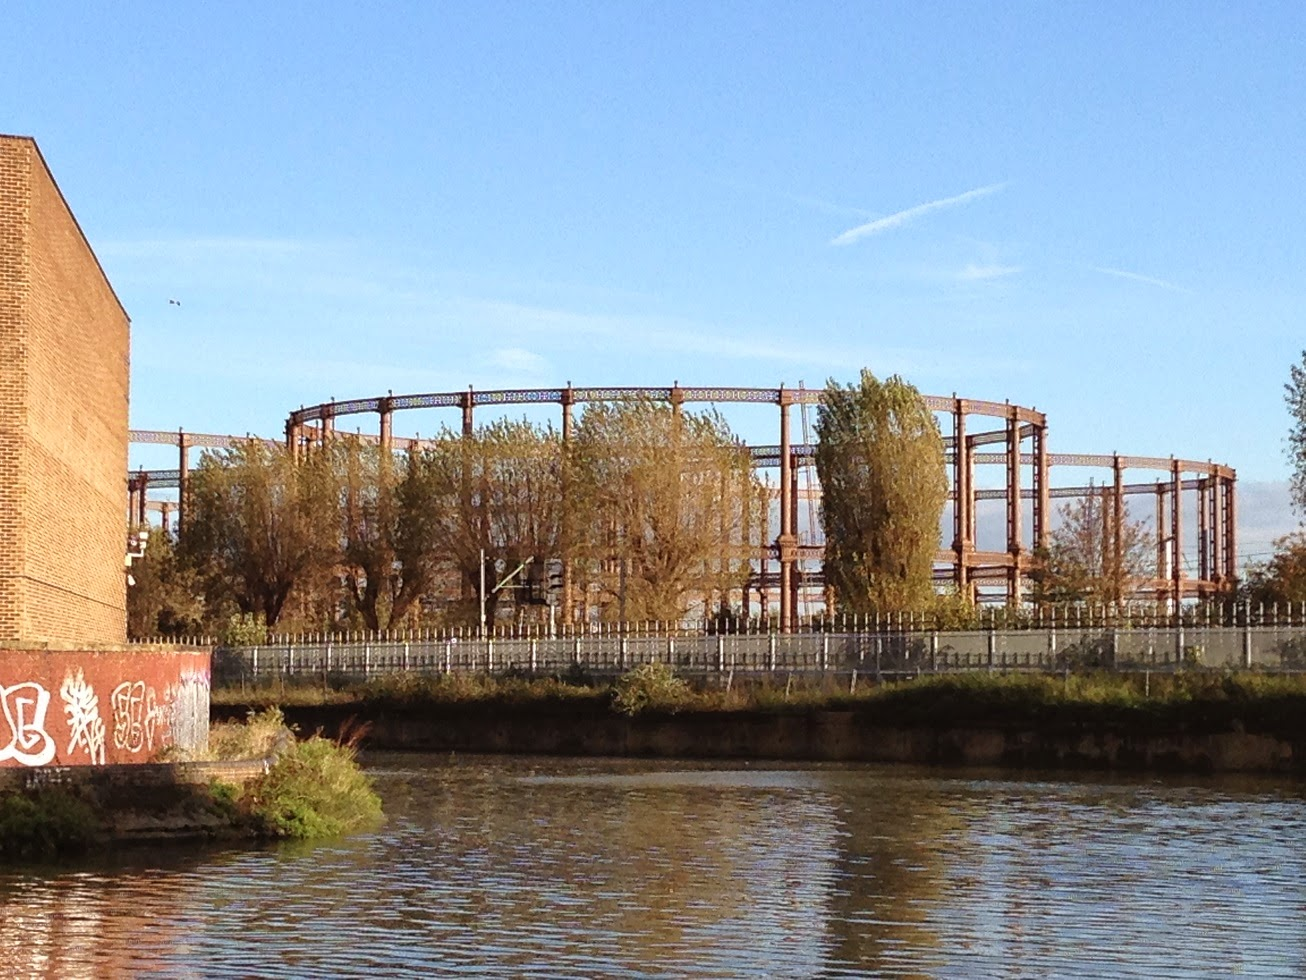 Former gas works, Bow, London